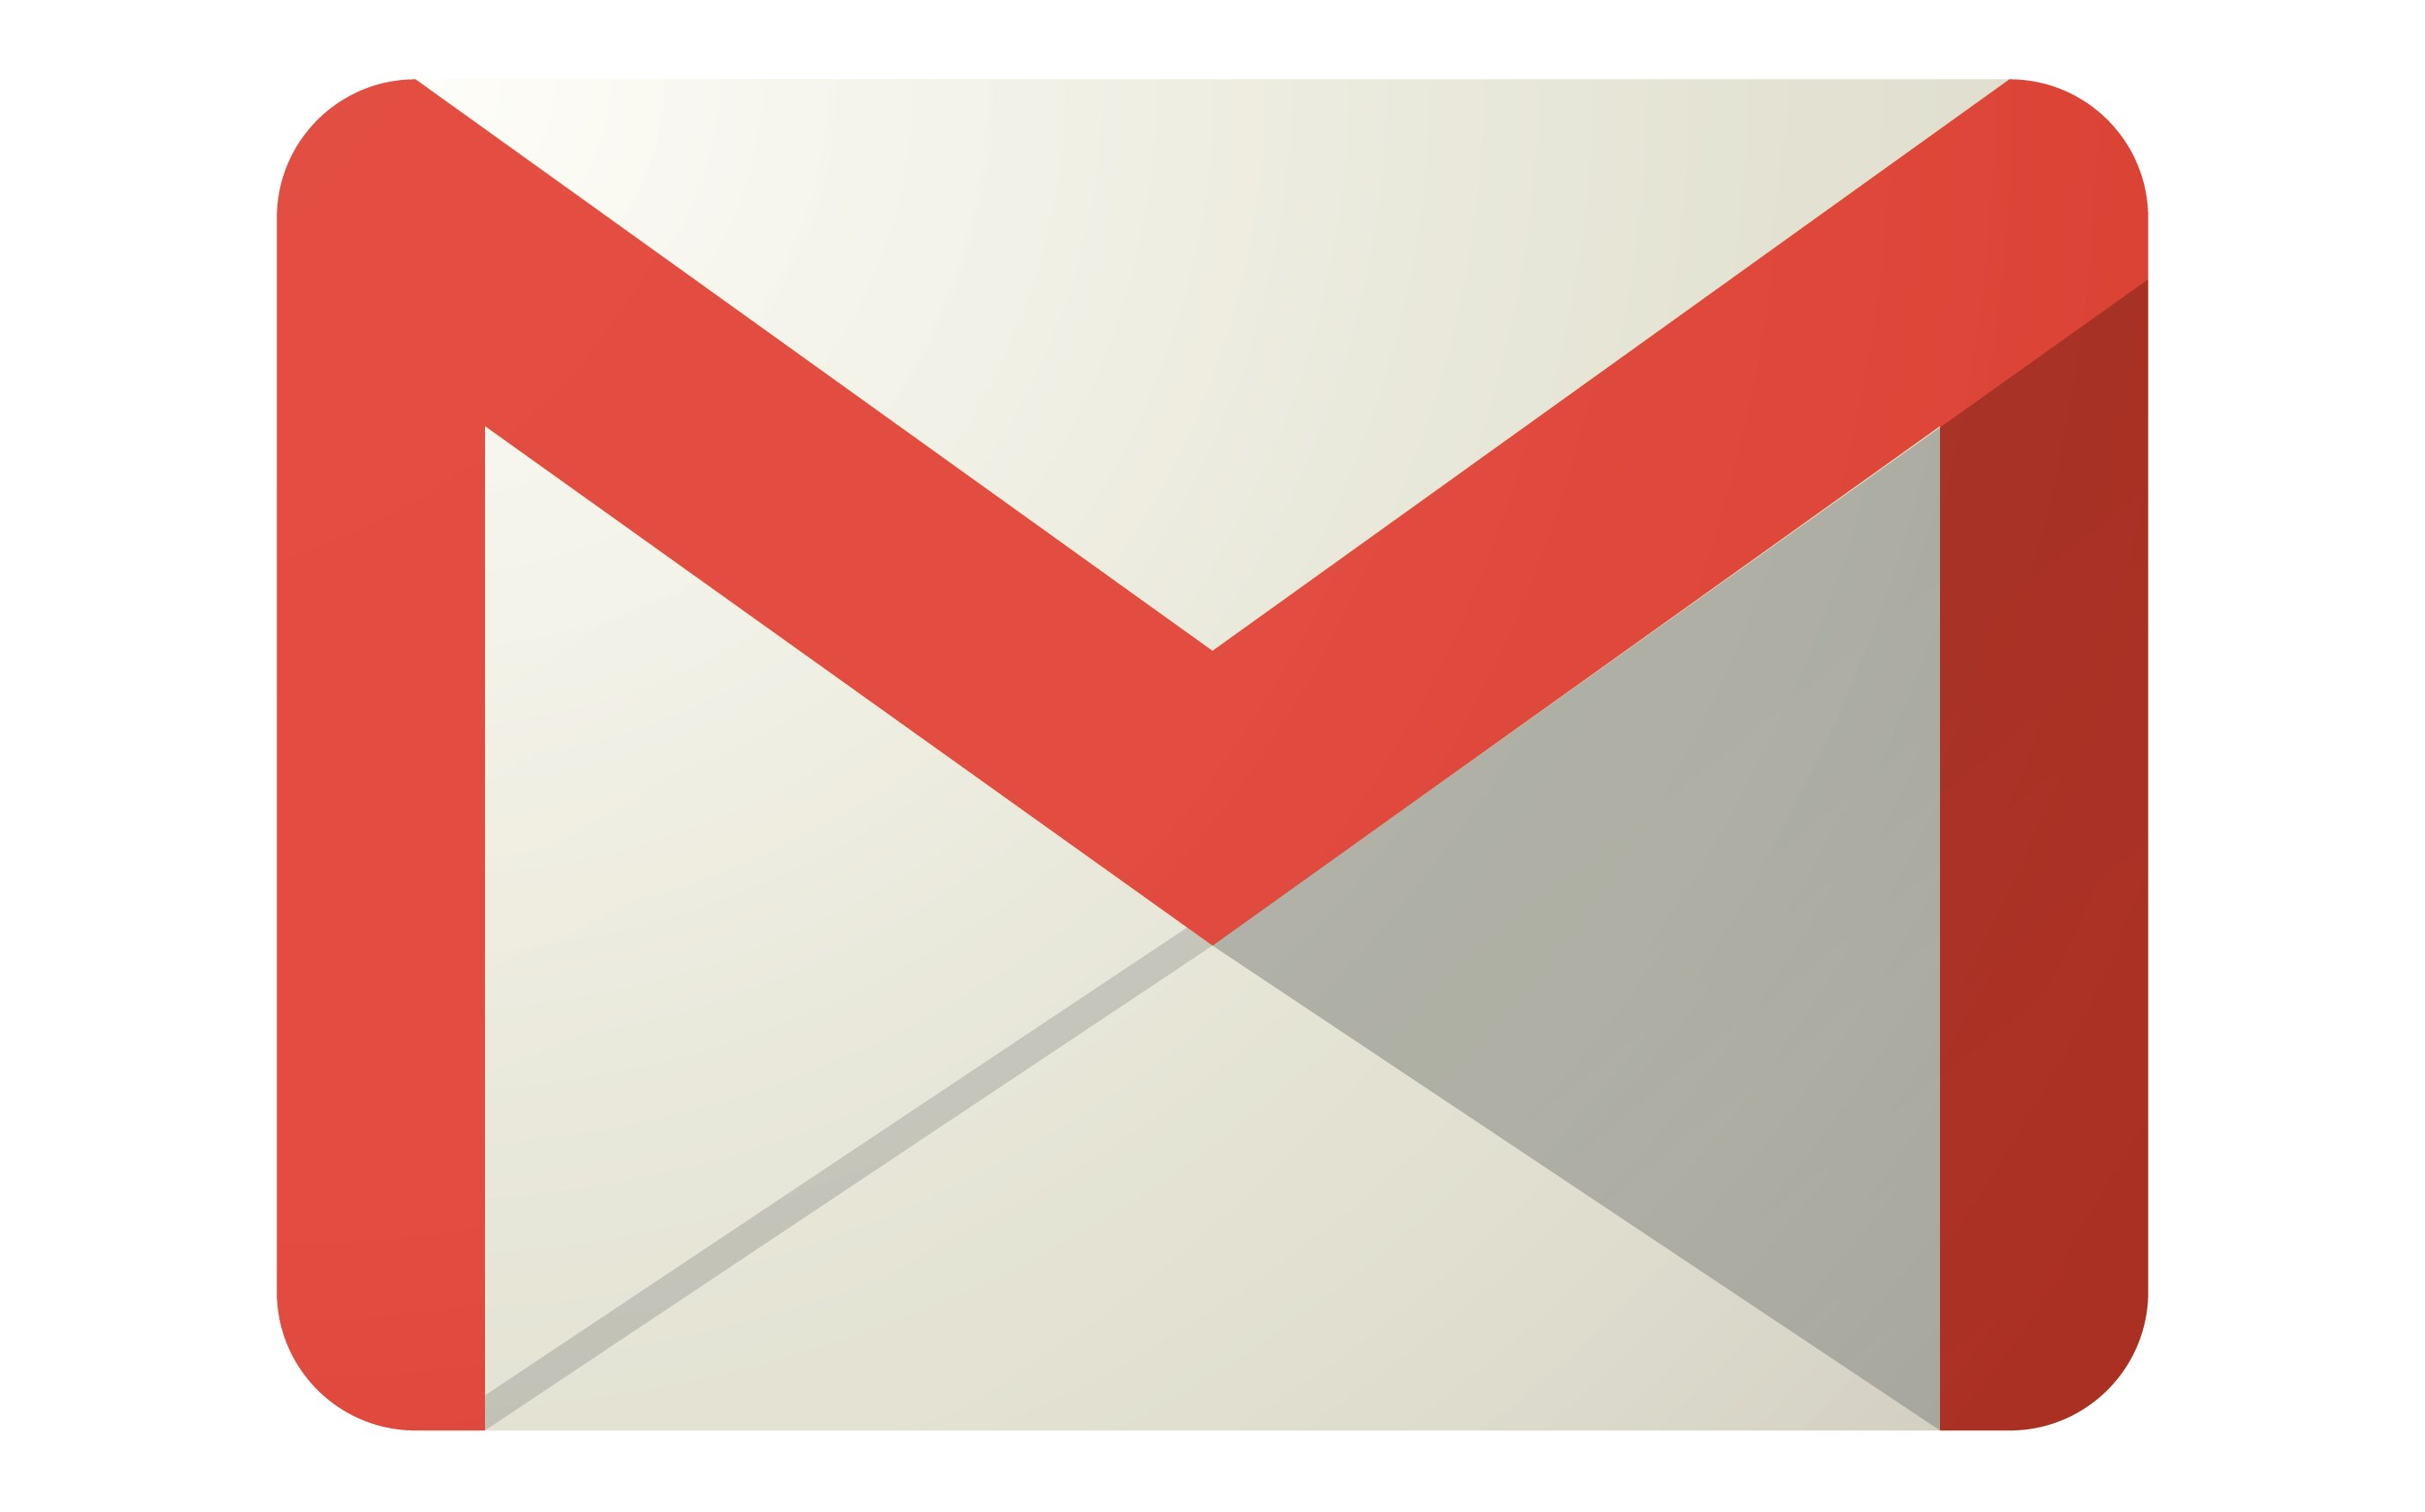 Android Apps bilder Gmail Google mail Sicherheit Update web